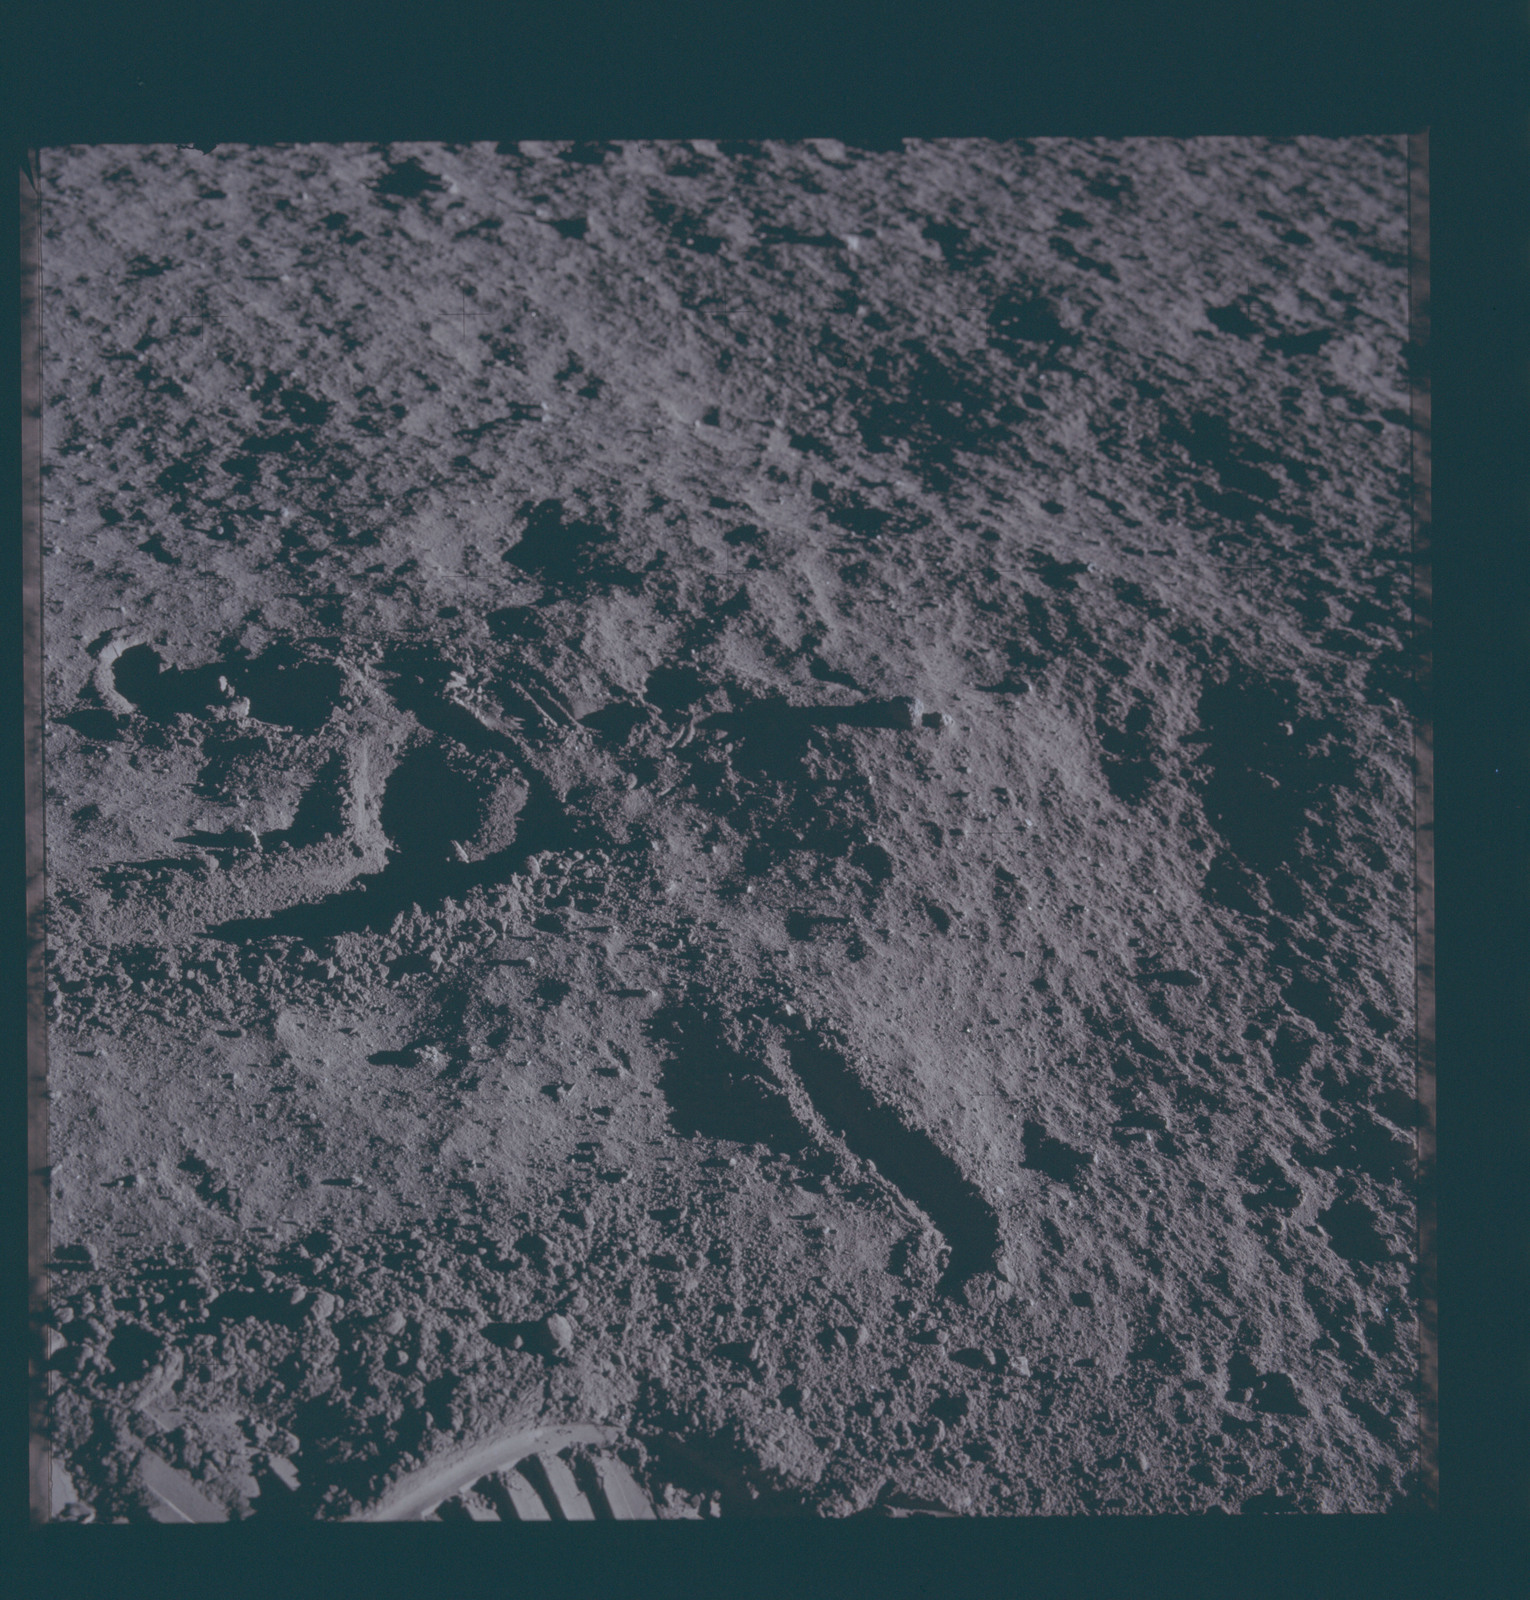 AS12-46-6722 - Apollo 12 - Apollo 12 Mission image  - View of the lunar surface